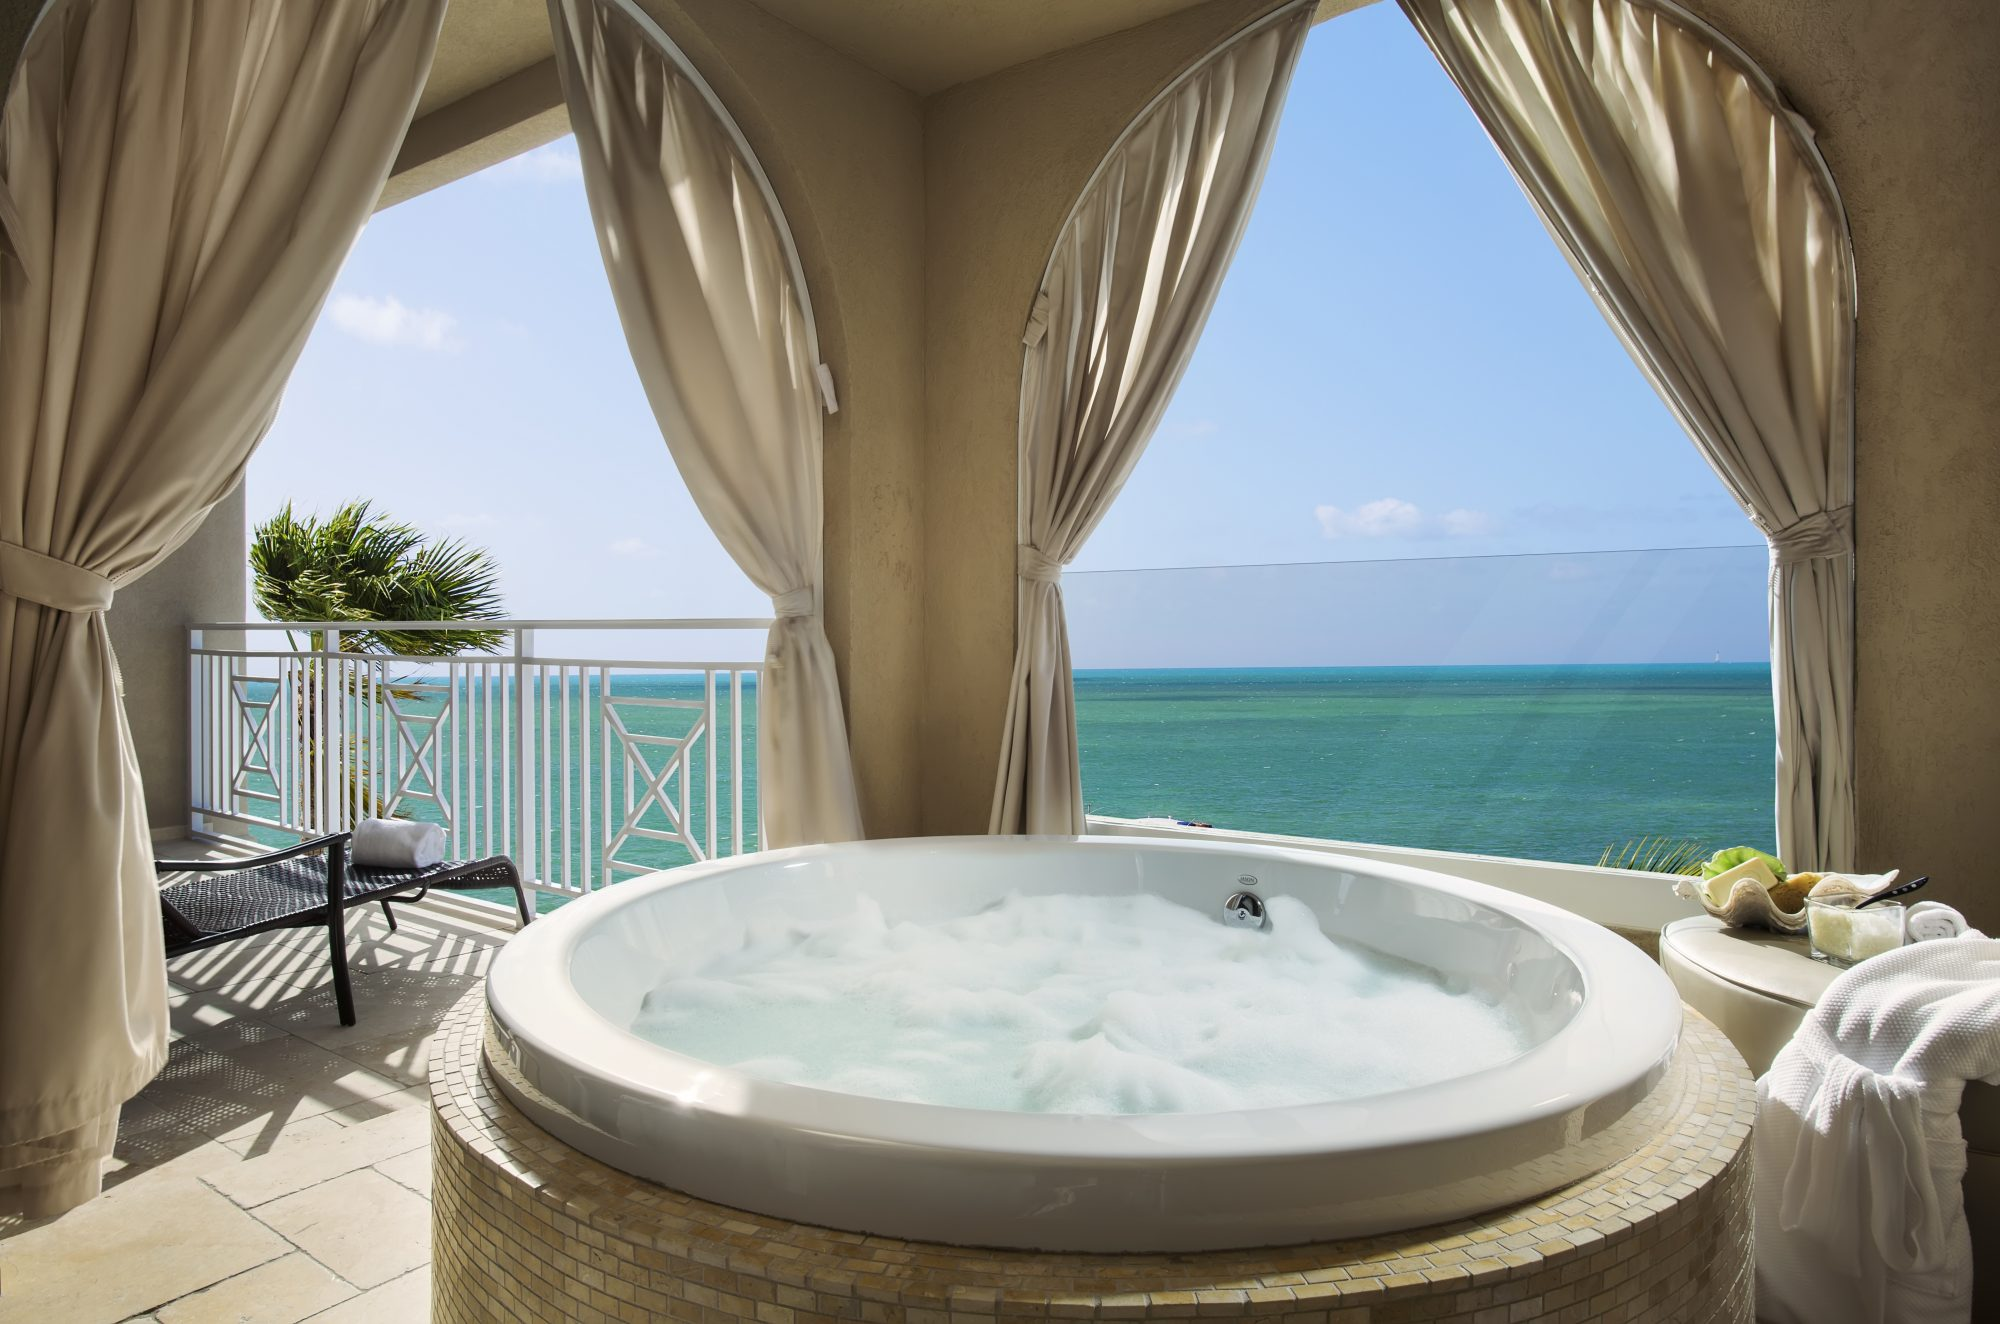 Cheeca Lodge and Spa Oceanfront Balcony and Tub with View